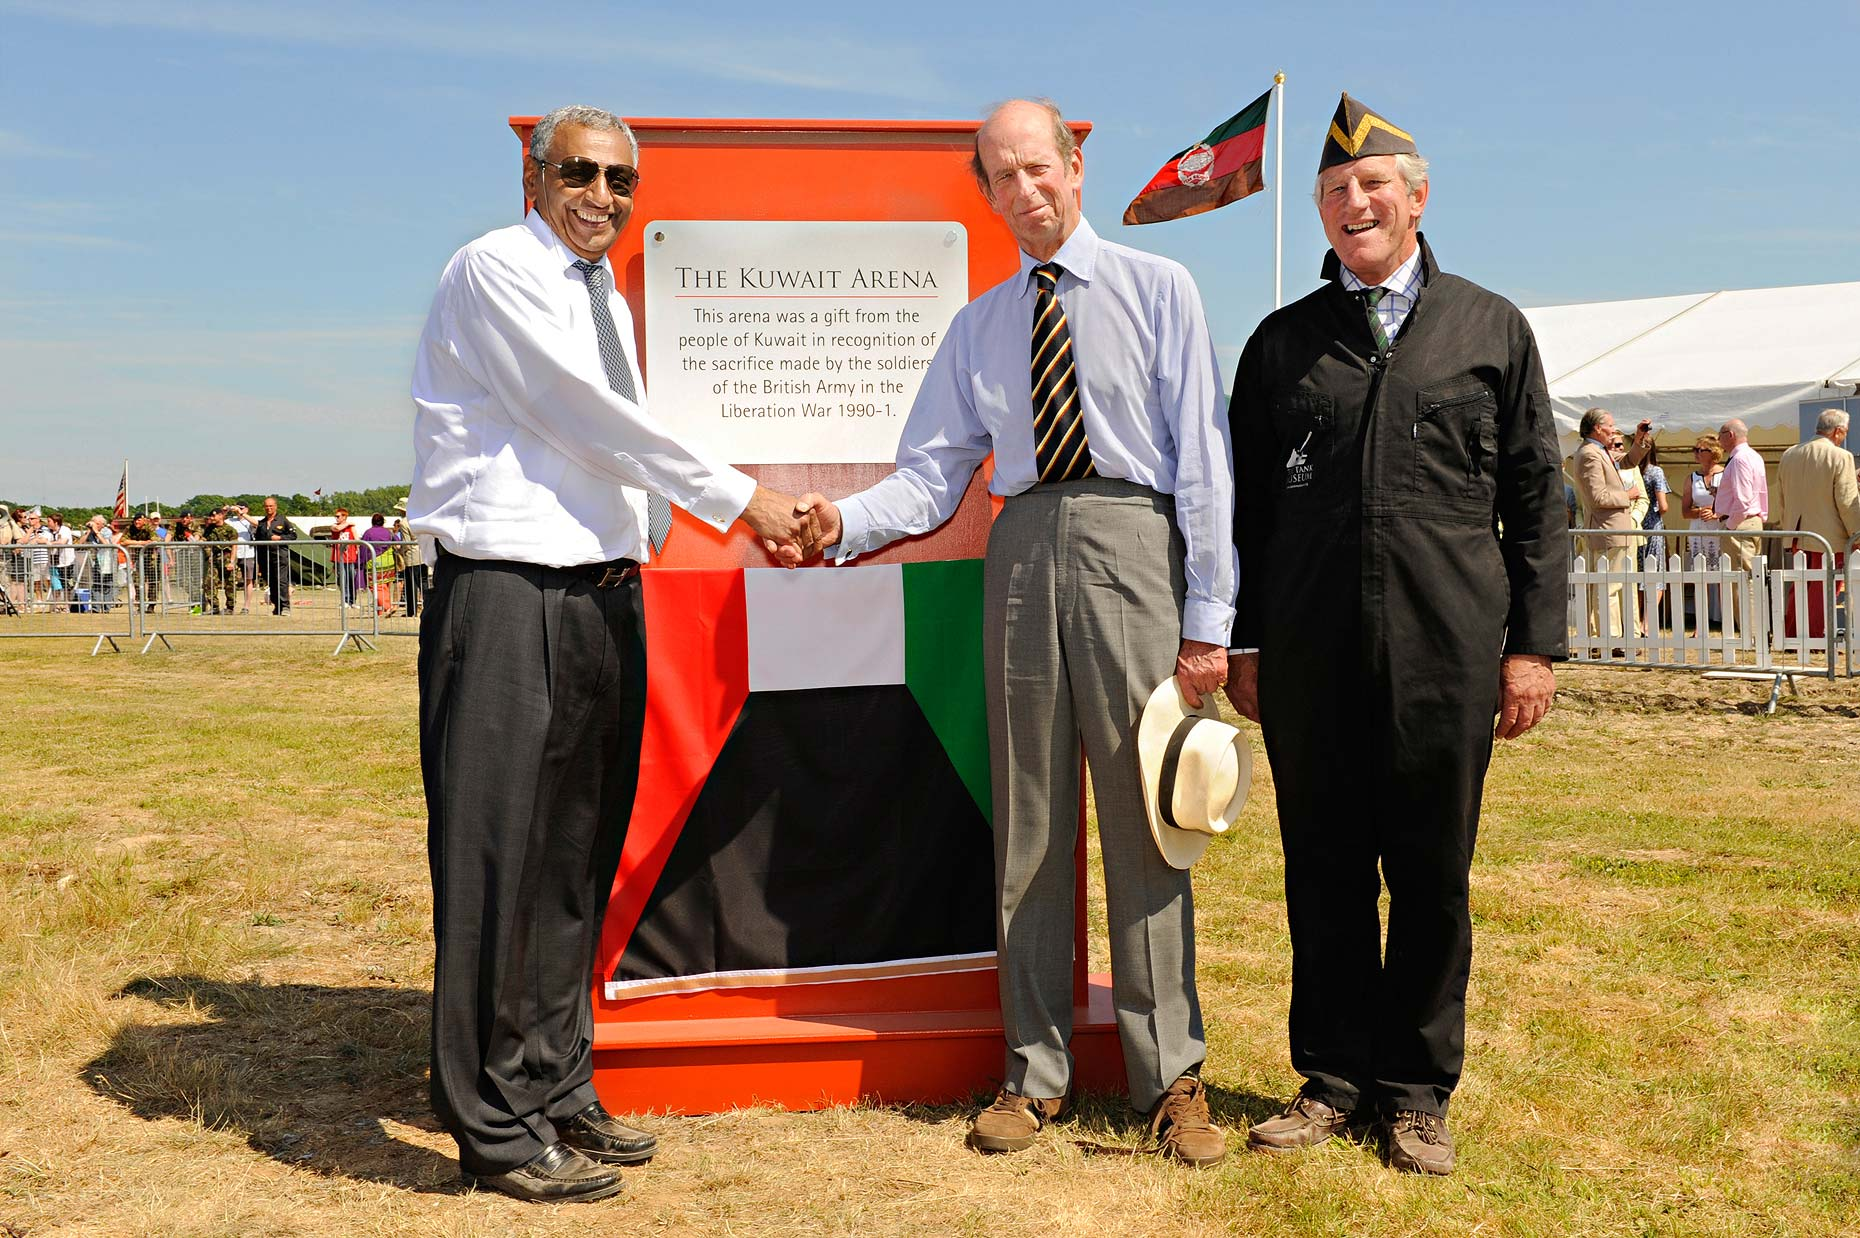 0952 The-Kuwait-Arena-Bovington-Tank-Museum-The-Duke-of-Kent-PR-and-Corporate.jpg